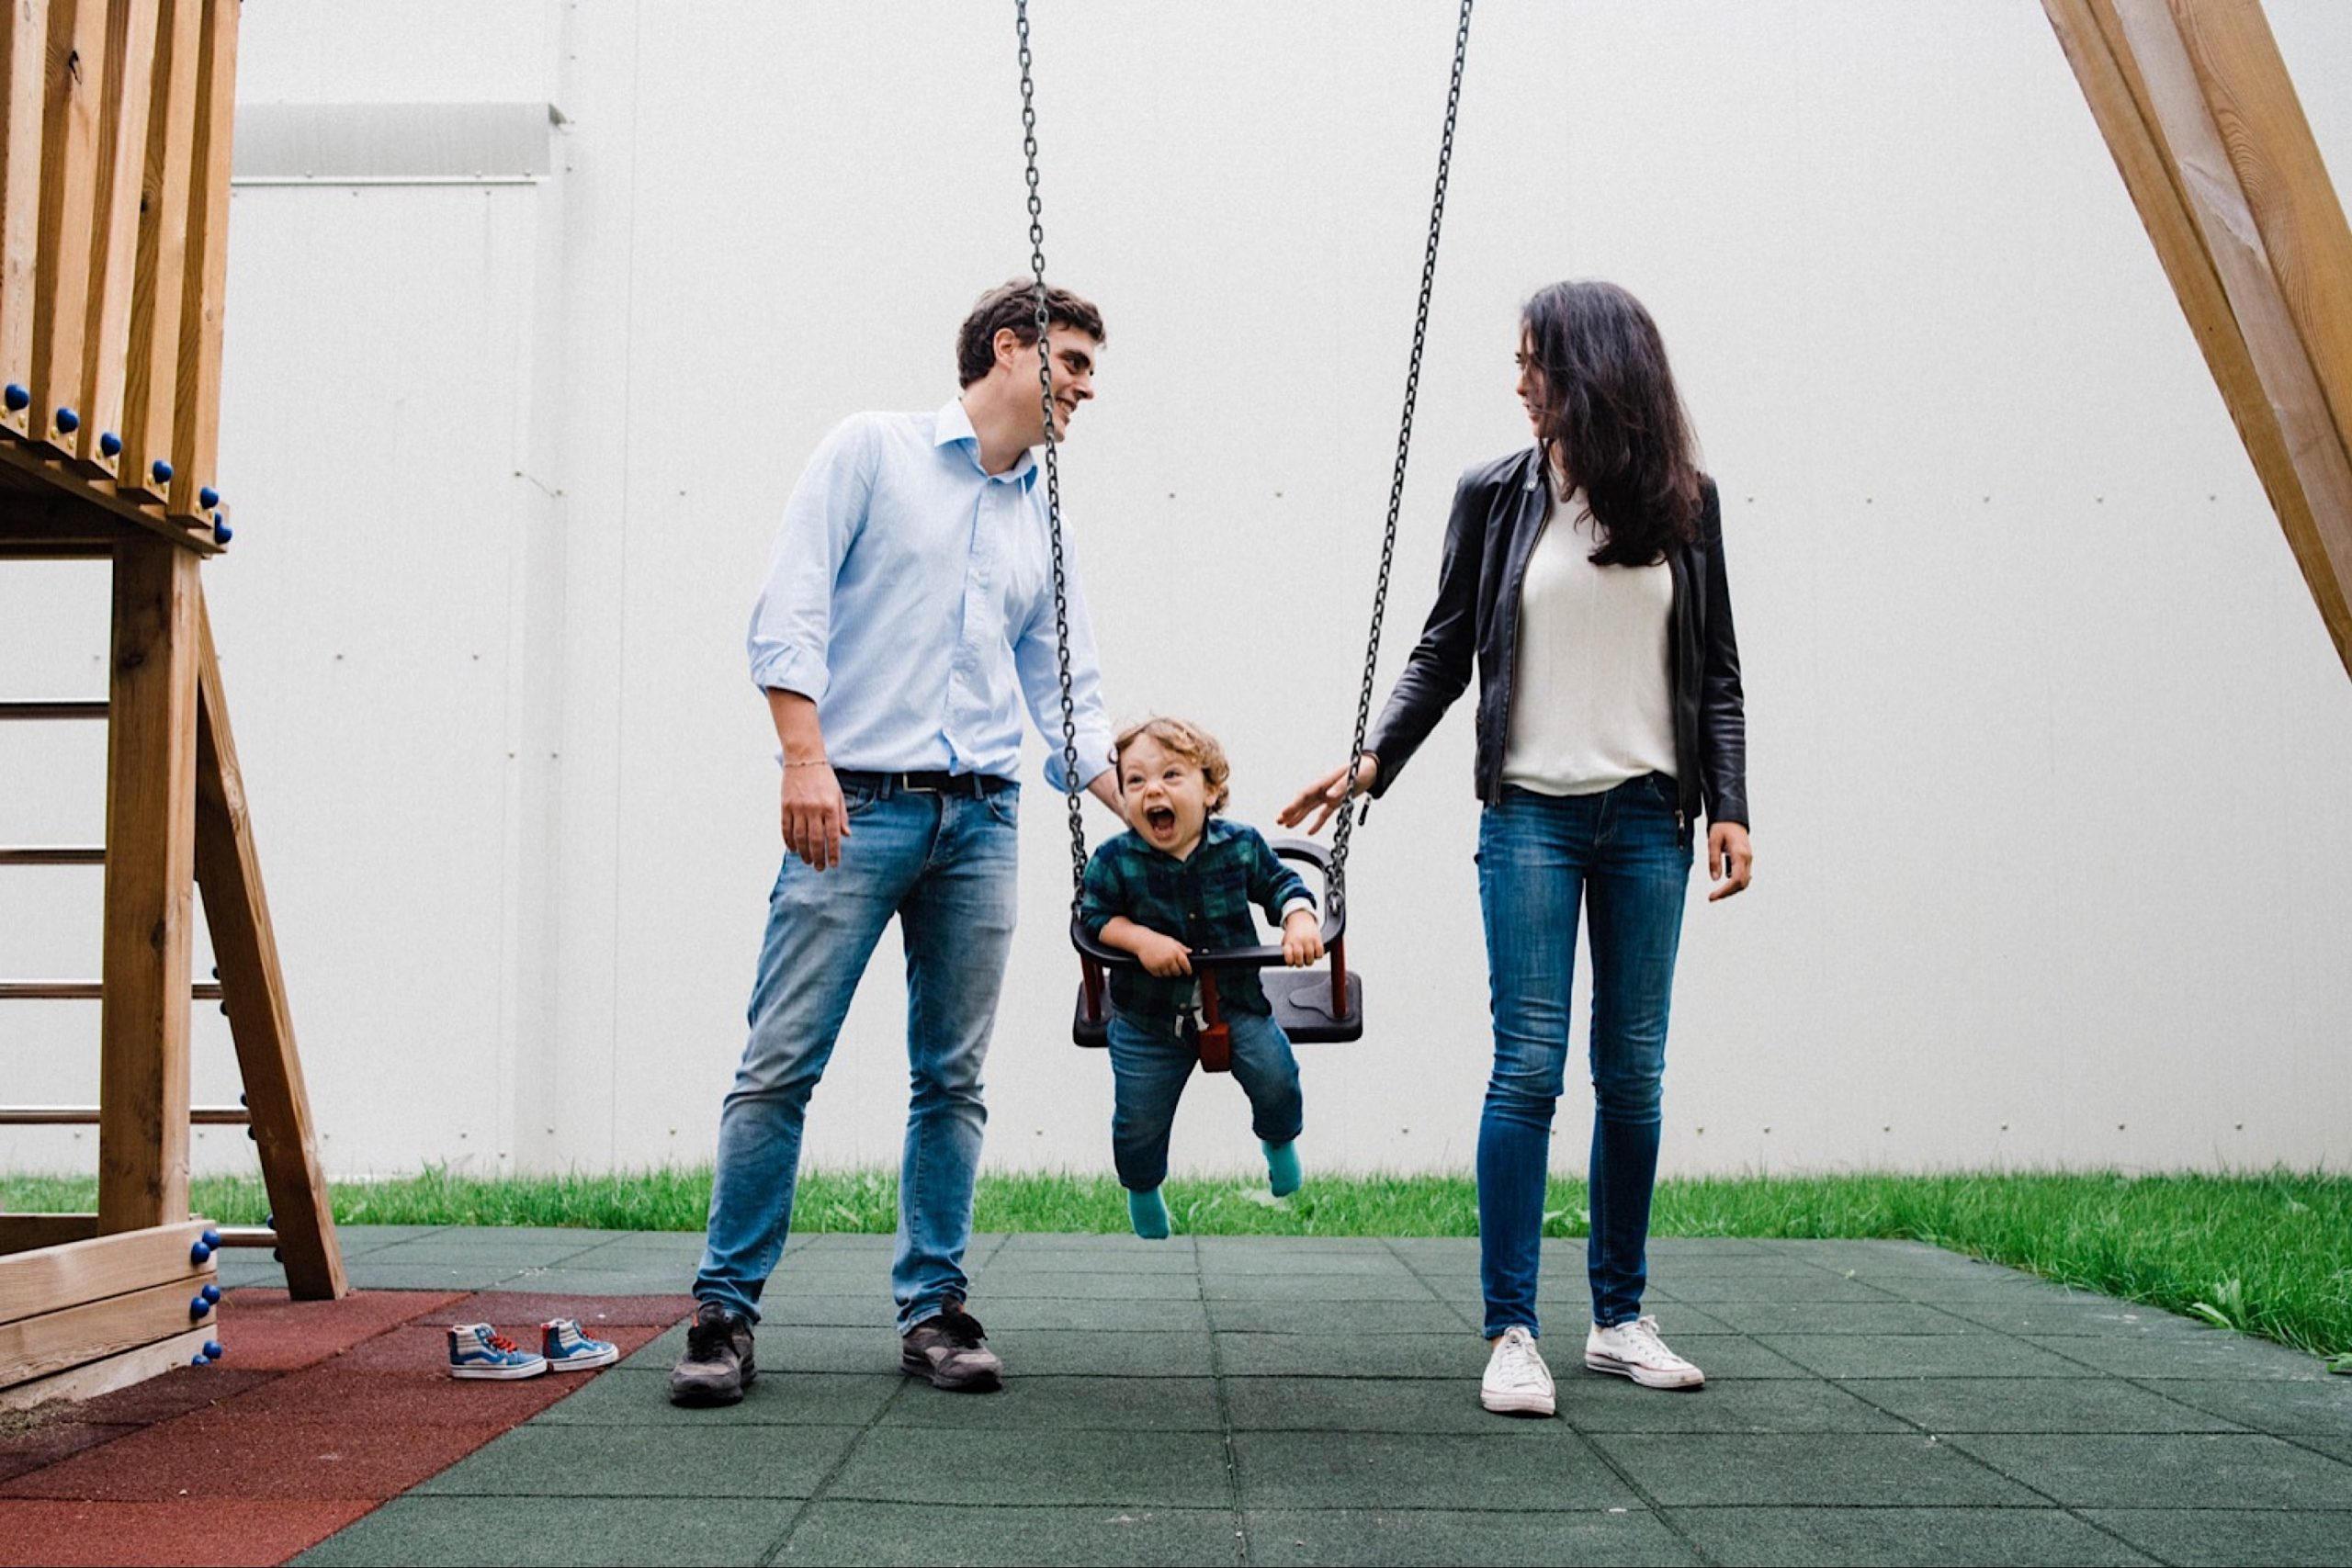 A photo of a Mum & Dad pushing their baby boy on the swing as he laughs during their Fun Milan Family Portraits.